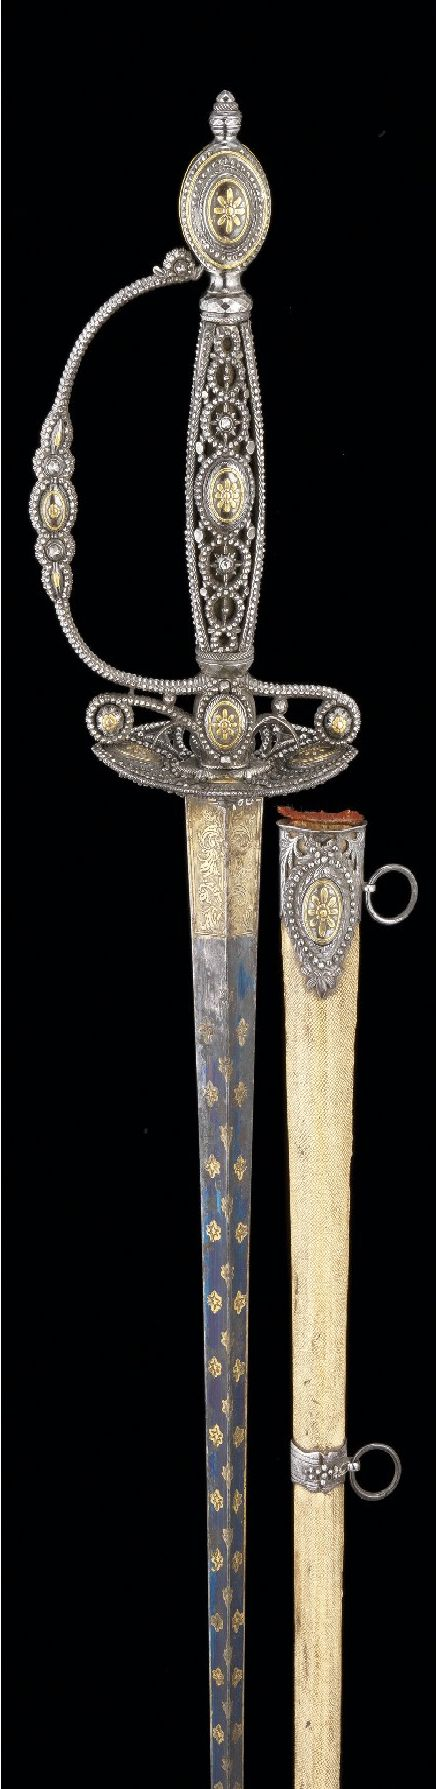 A FINE ENGLISH SMALL-SWORD WITH BLUED CUT-STEEL HILT, CIRCA 1780, PERHAPS WOODSTOCK